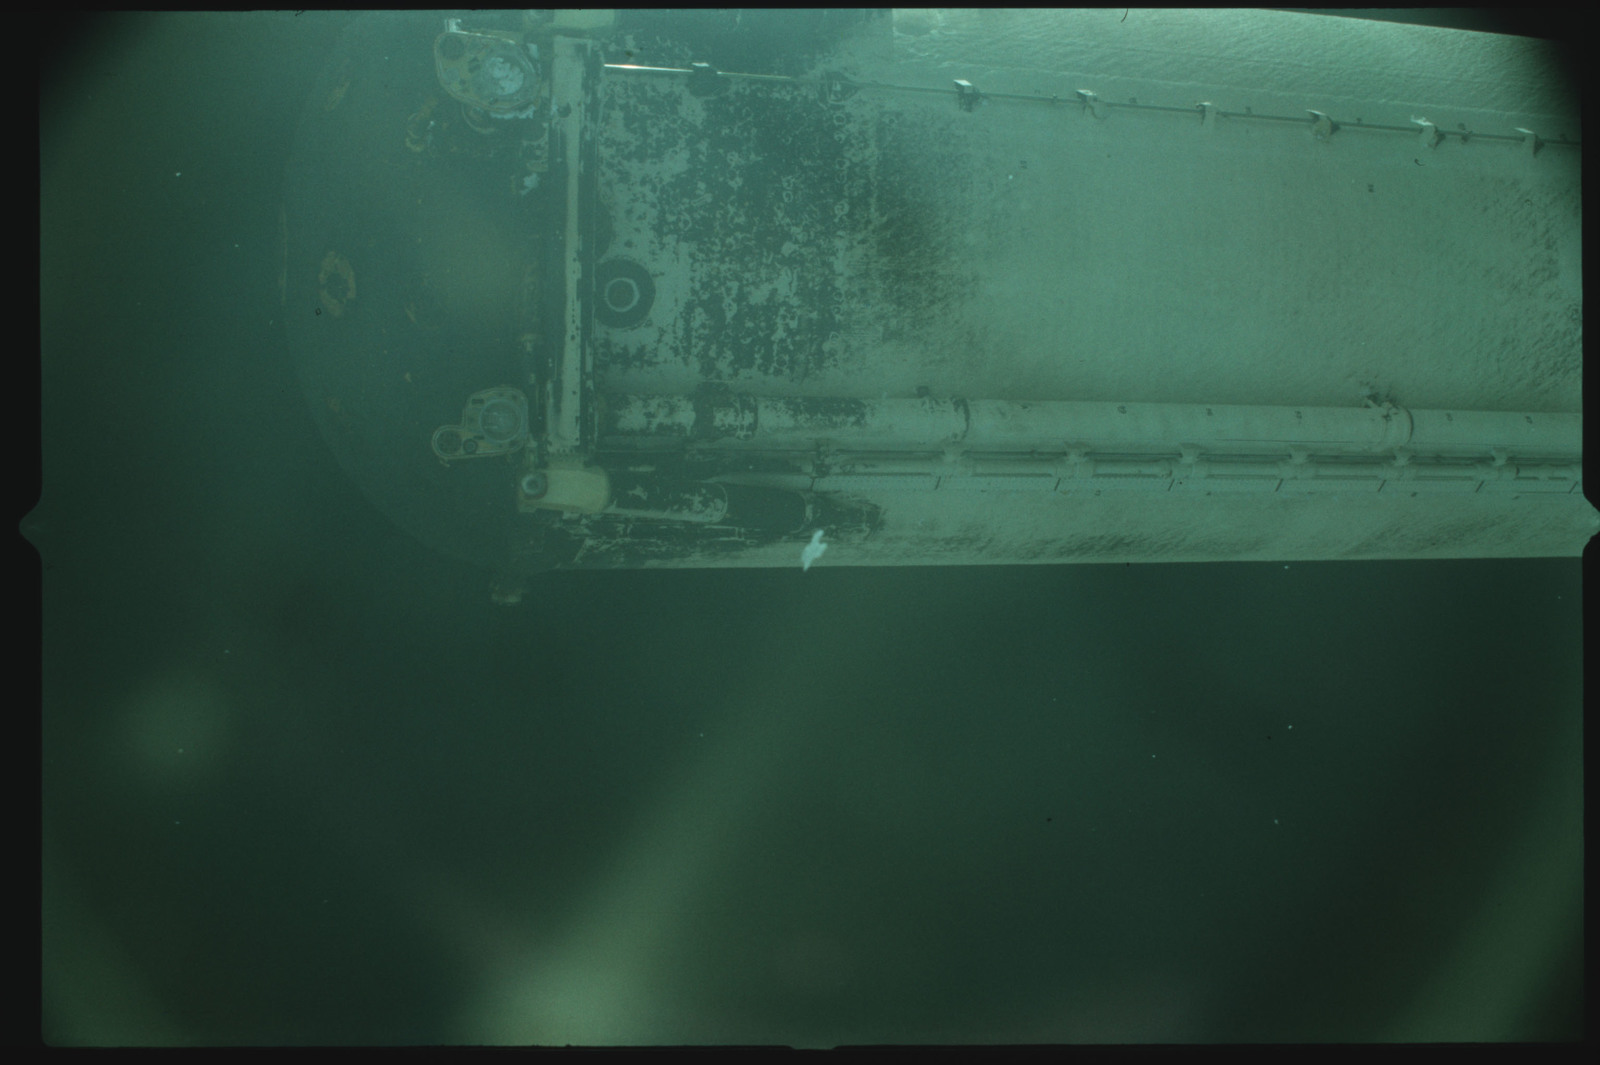 S02-500-936 - STS-002 - View of the External Tank after separation from Columbia during the STS-2 mission